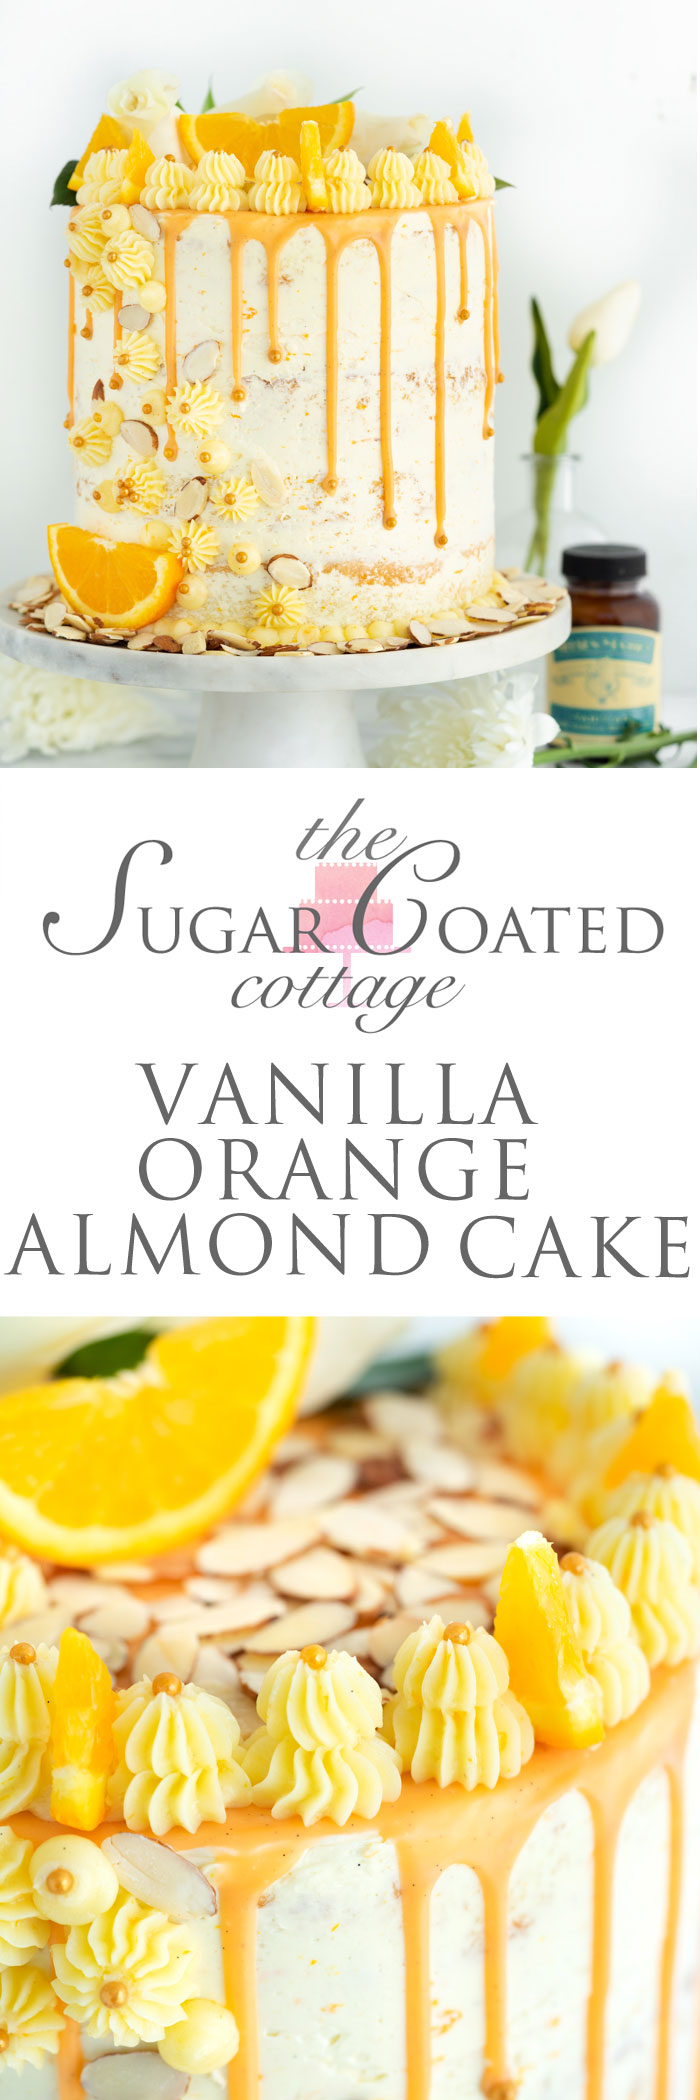 Vanilla Orange Almond Cake Recipe. Vanilla orange and almond soaked cake with layers of vanilla orange almond buttercream. | thesugarcoatedcottage.com #cake @NielsenMassey